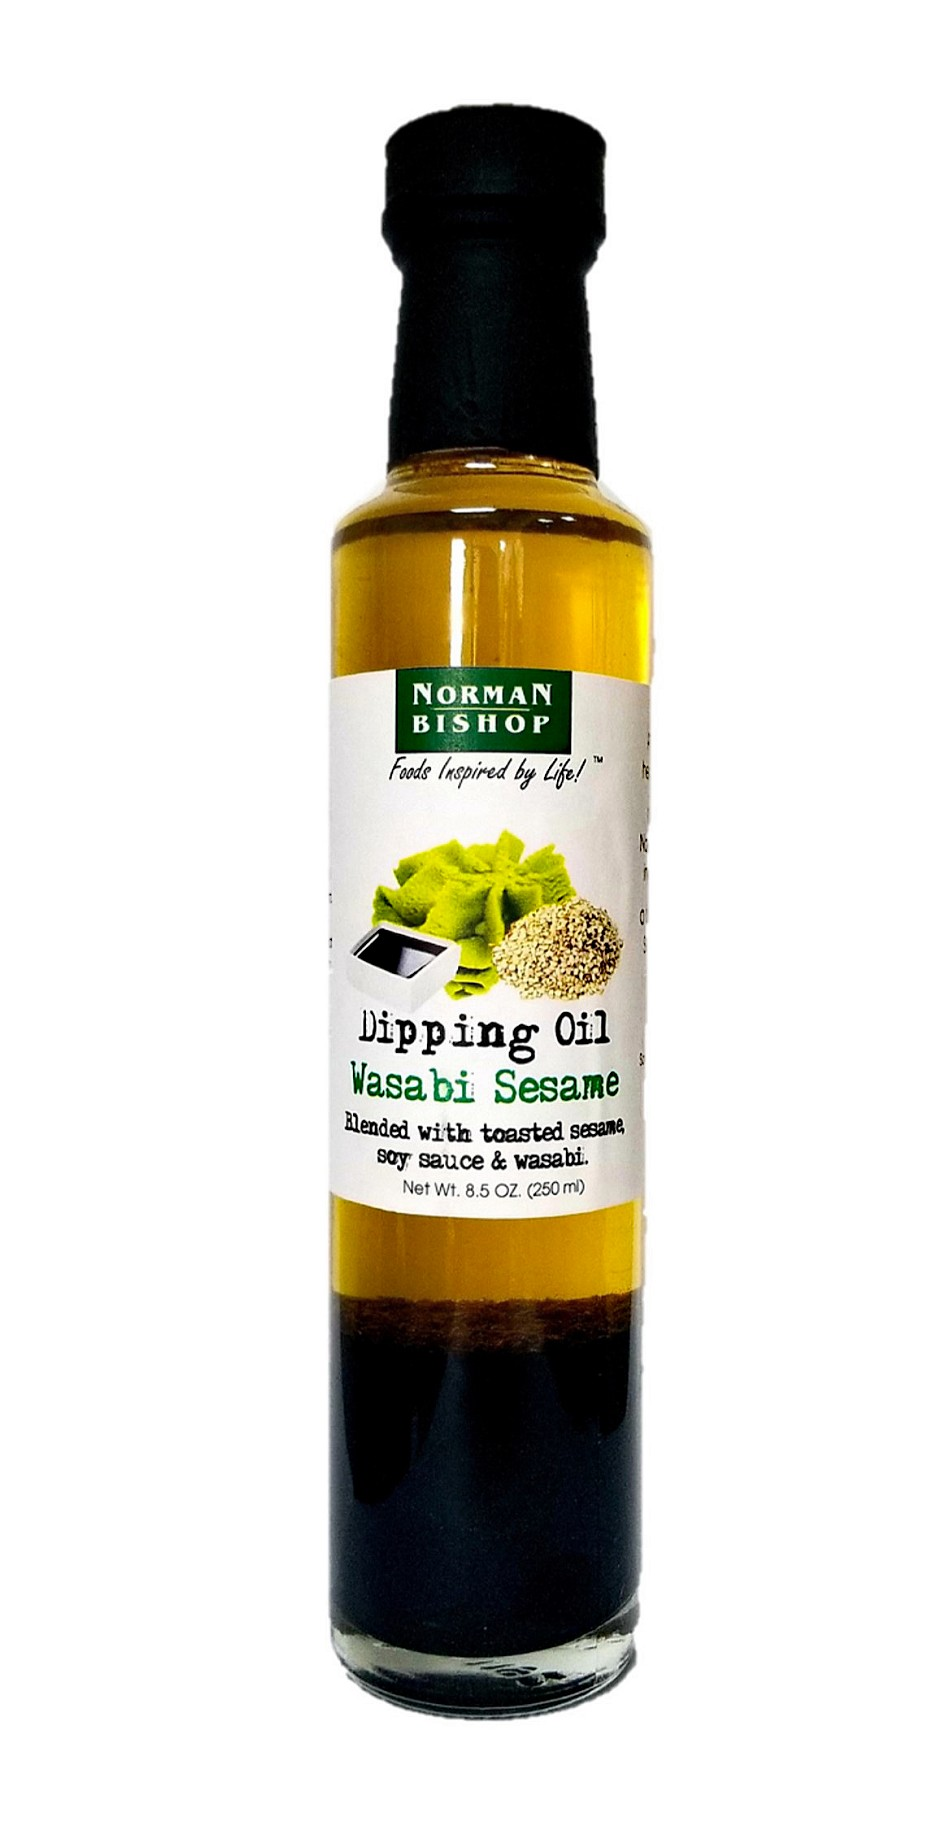 Norman Bishop Wasabi Sesame Dipping Oil Case of 12